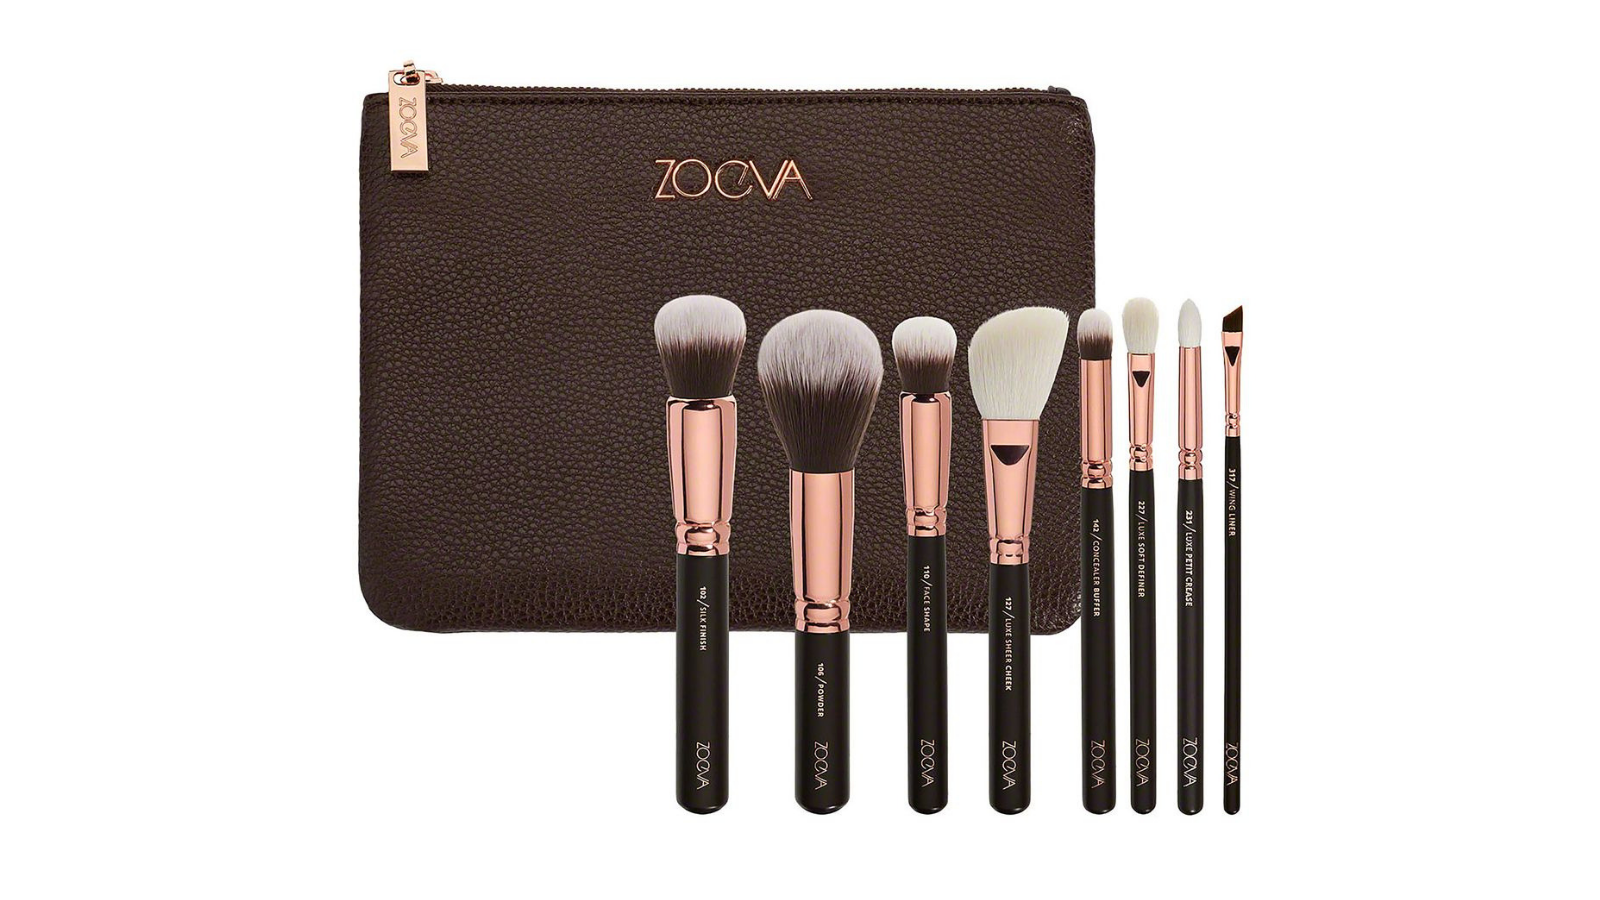 All beauty buffs and newbies need a do-it-all brush kit, and this beauty from Zoeva is the best of the bunch. Unlike many capsule sets, you'll find yourself ...